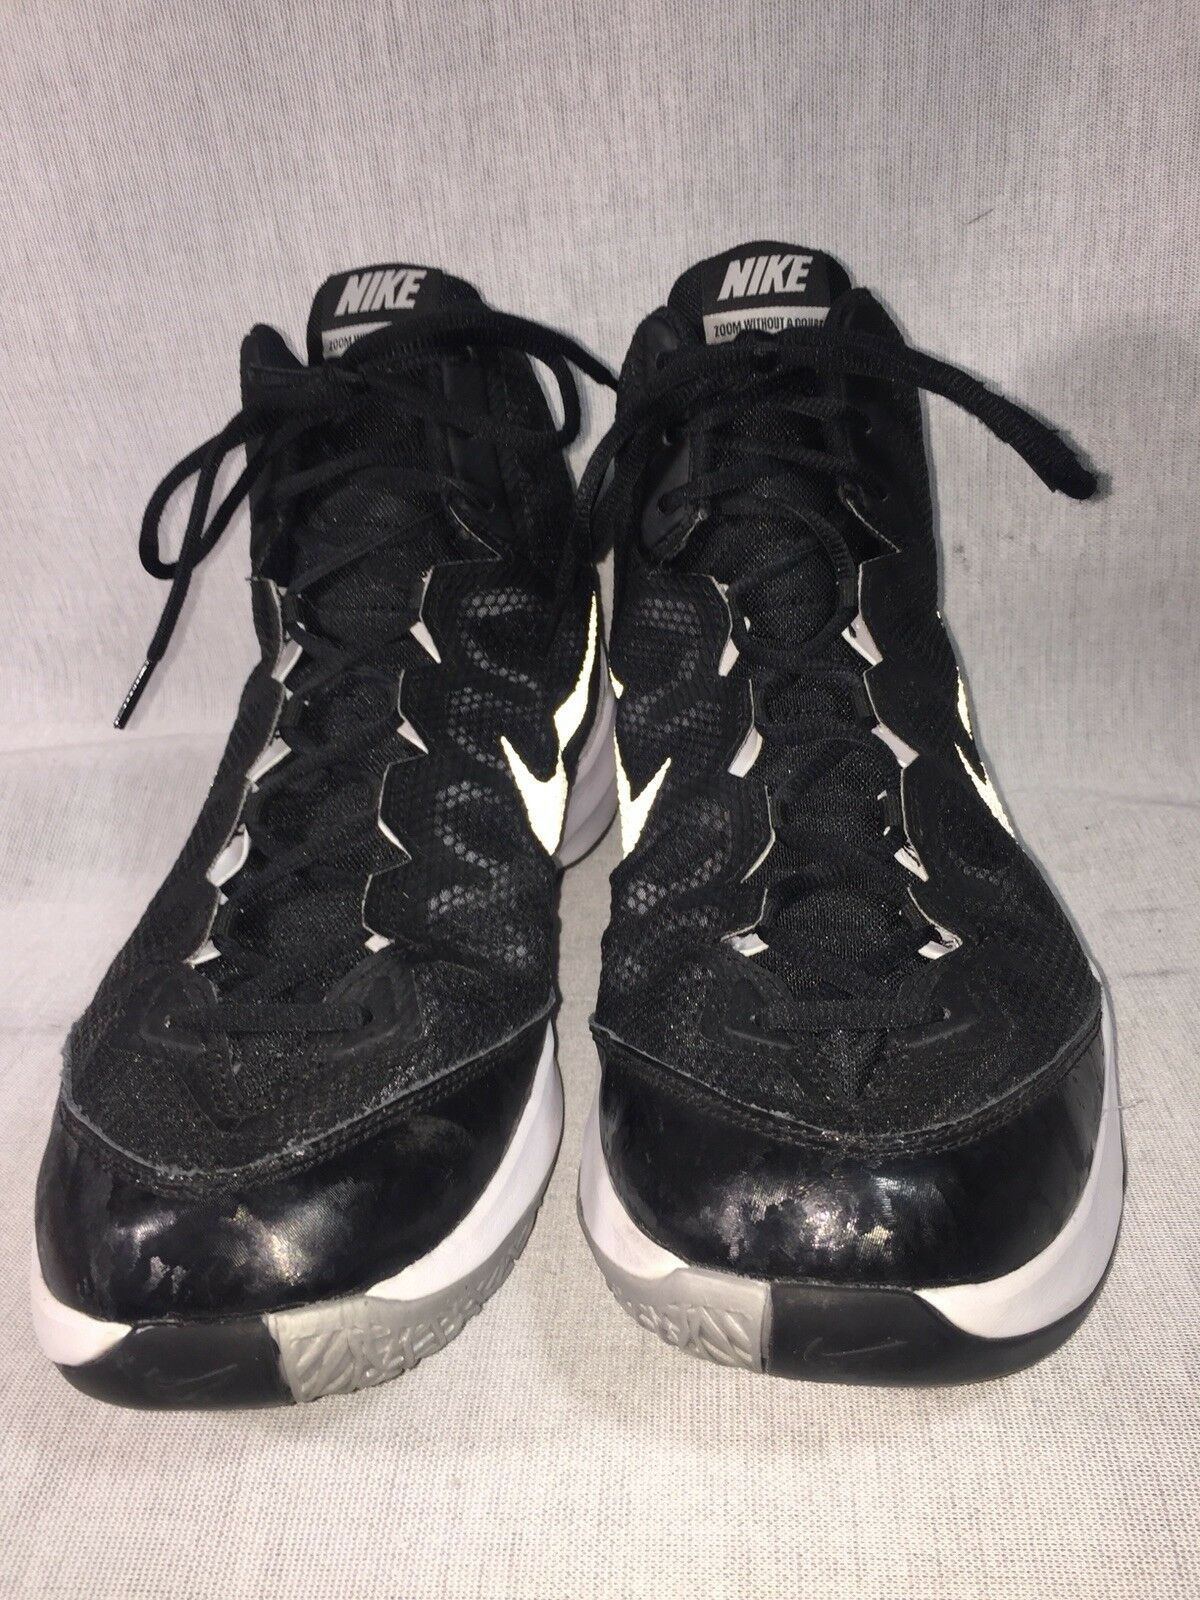 ceaa4c3435 Nike Zoom Without A Doubt Black & White Mens Basketball Shoes Size 13